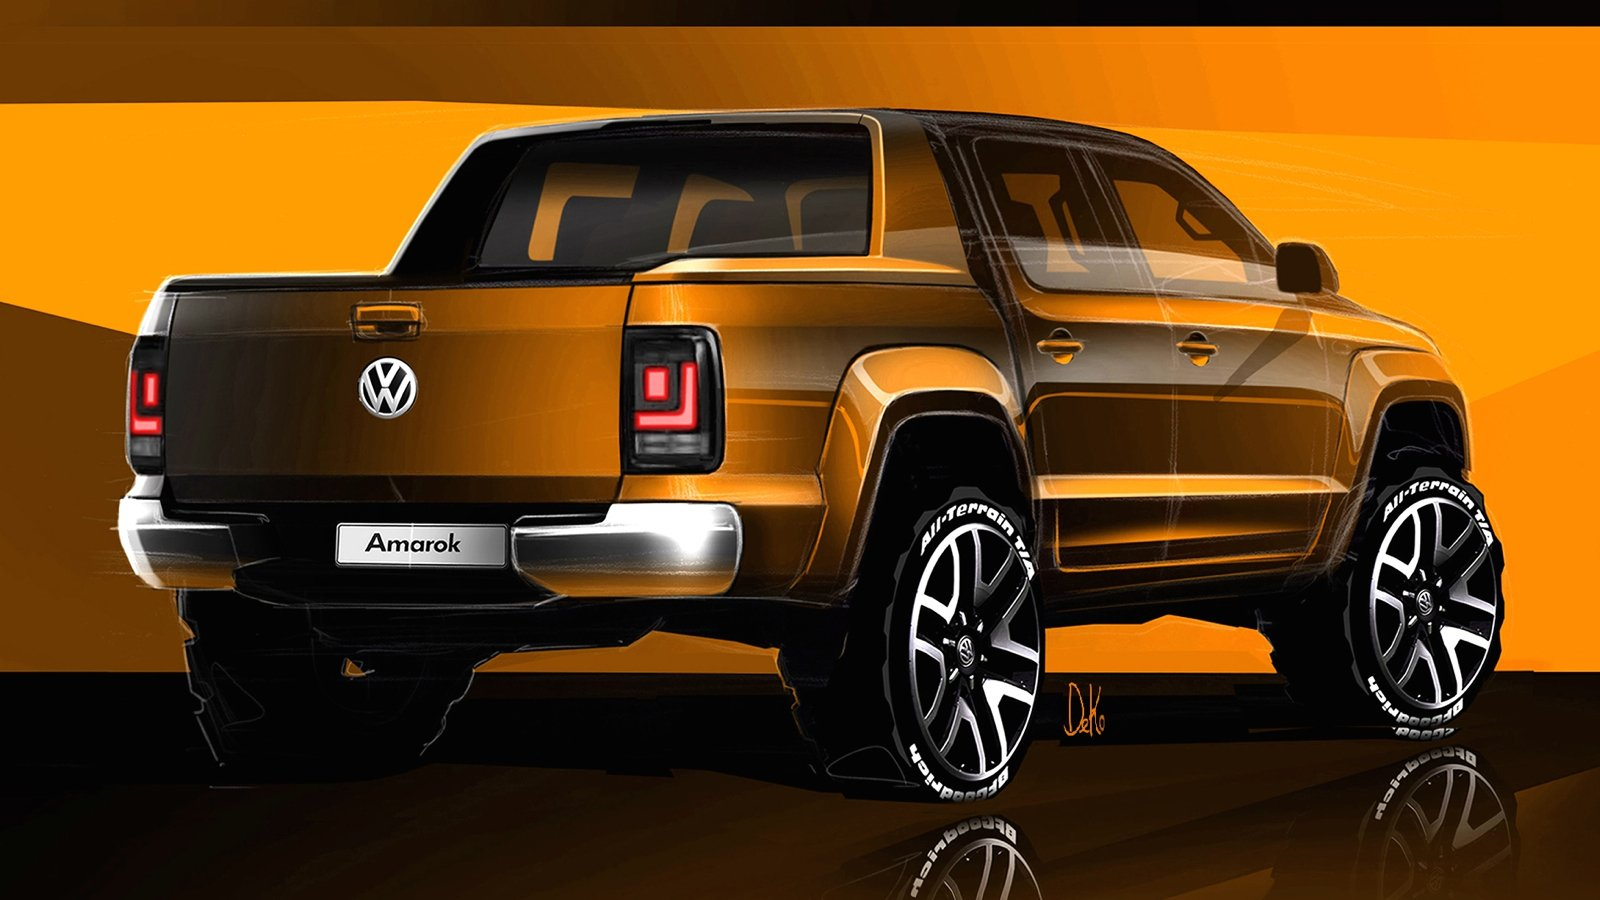 2017 Volkswagen Amarok sketches revealed - Photos (1 of 9)